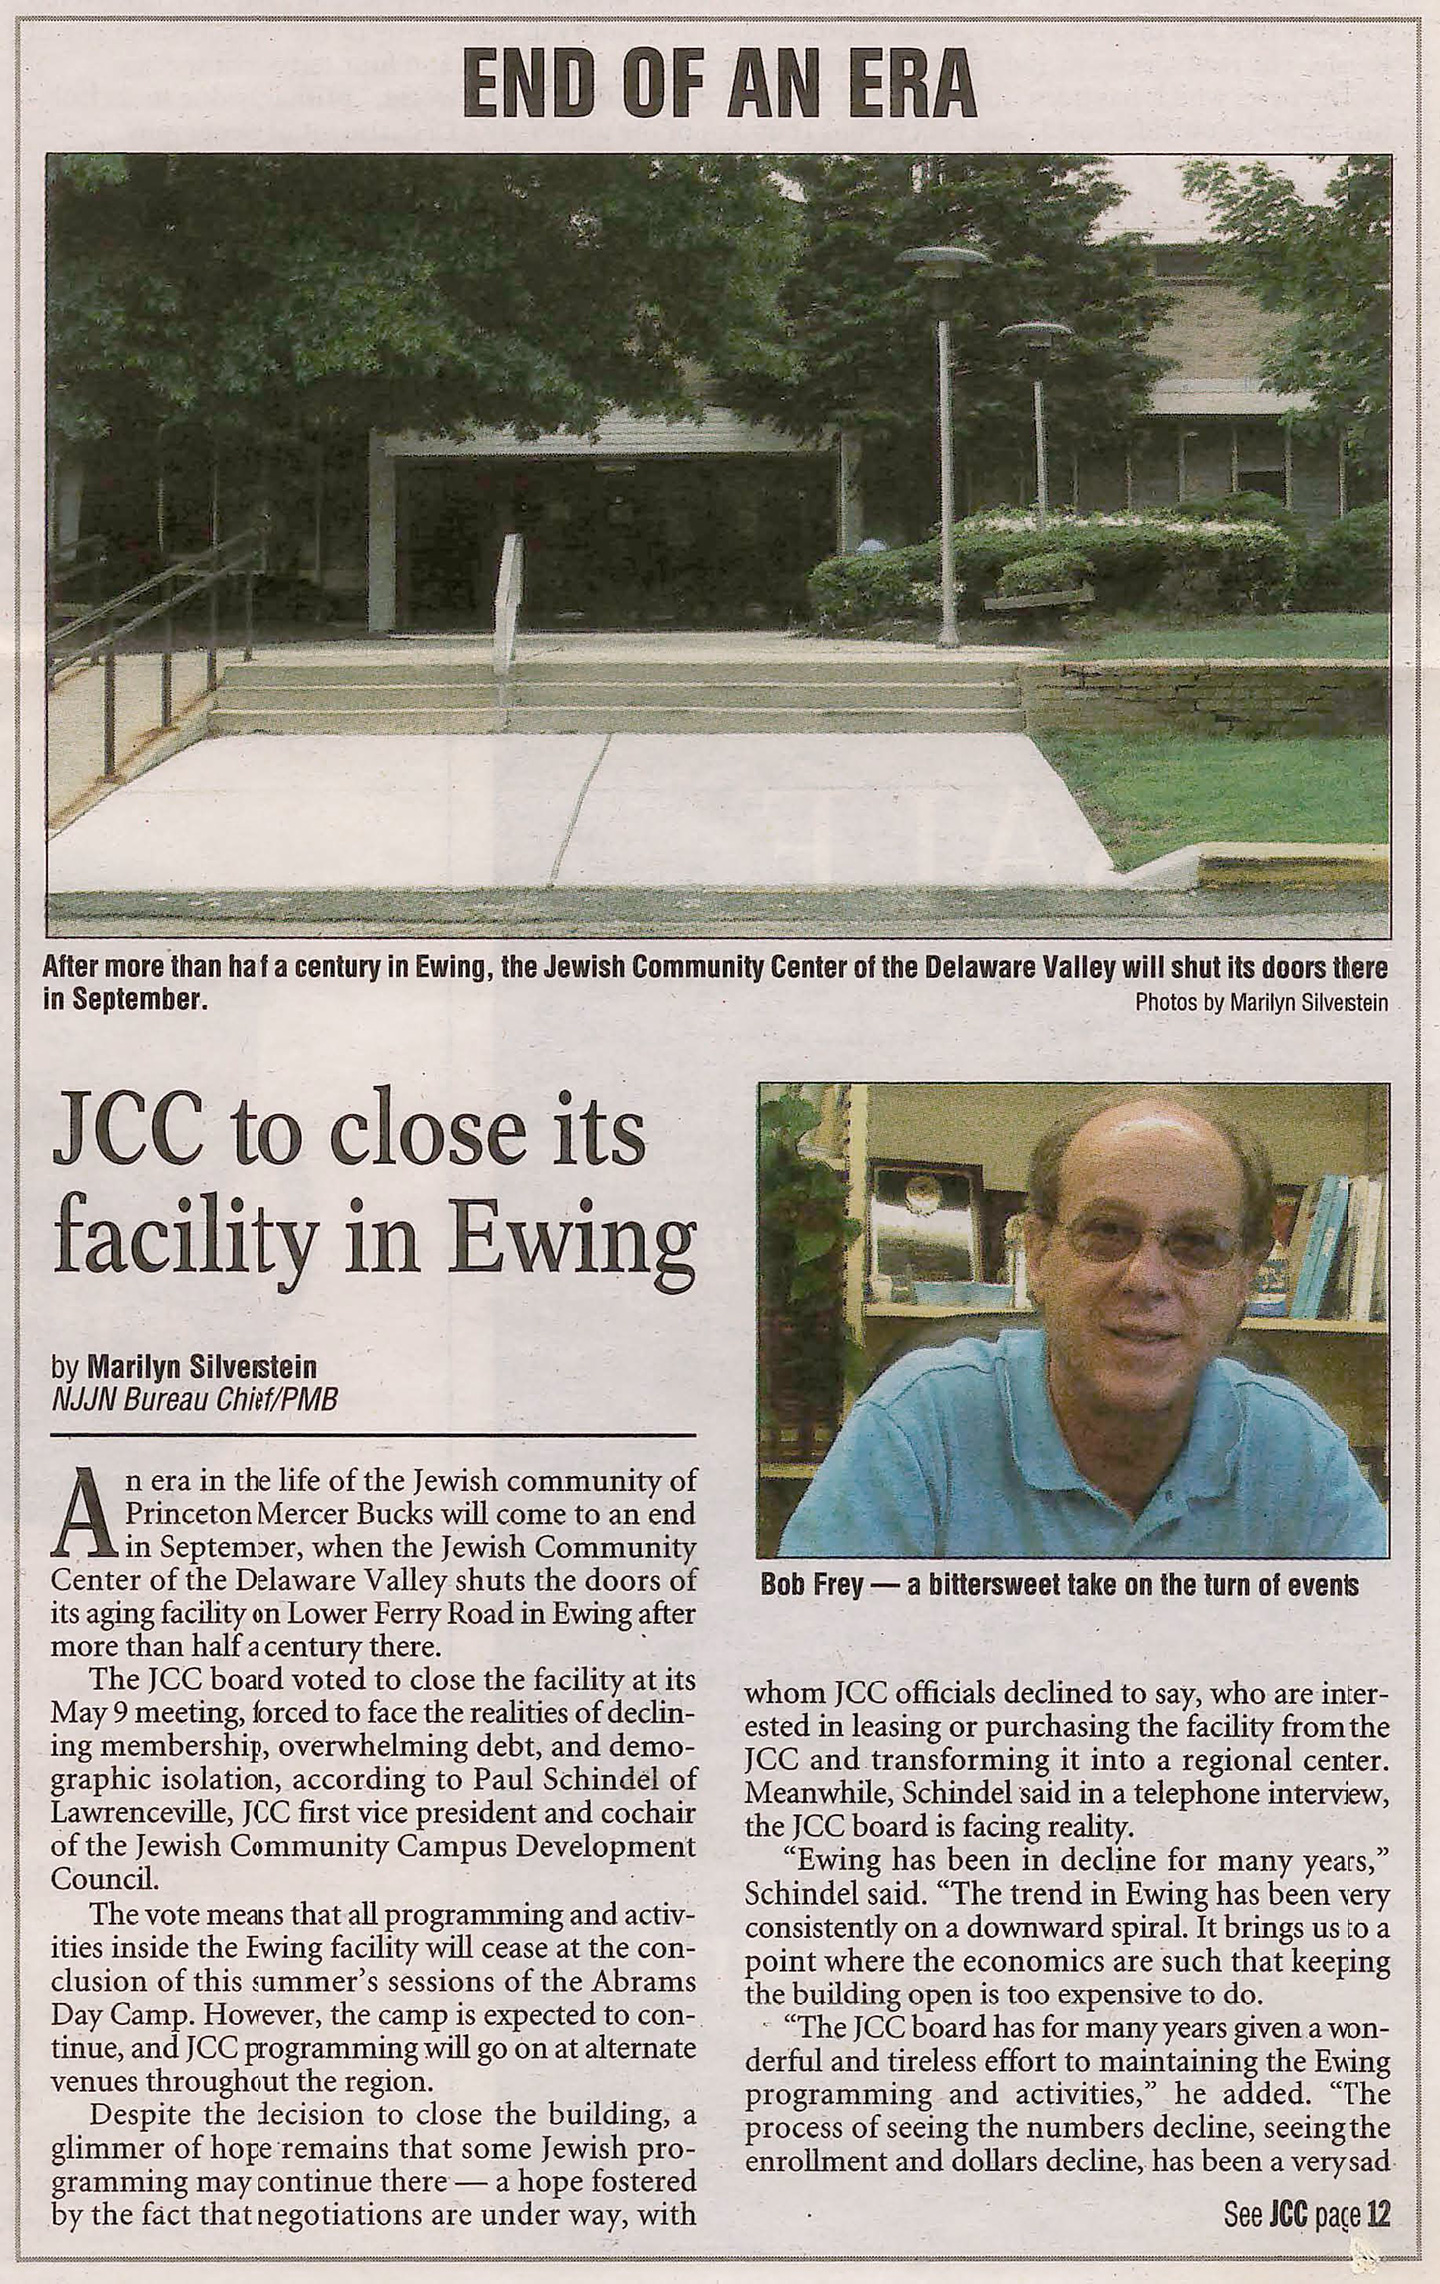 The JCC announces plans to move from Ewing to West Windsor.